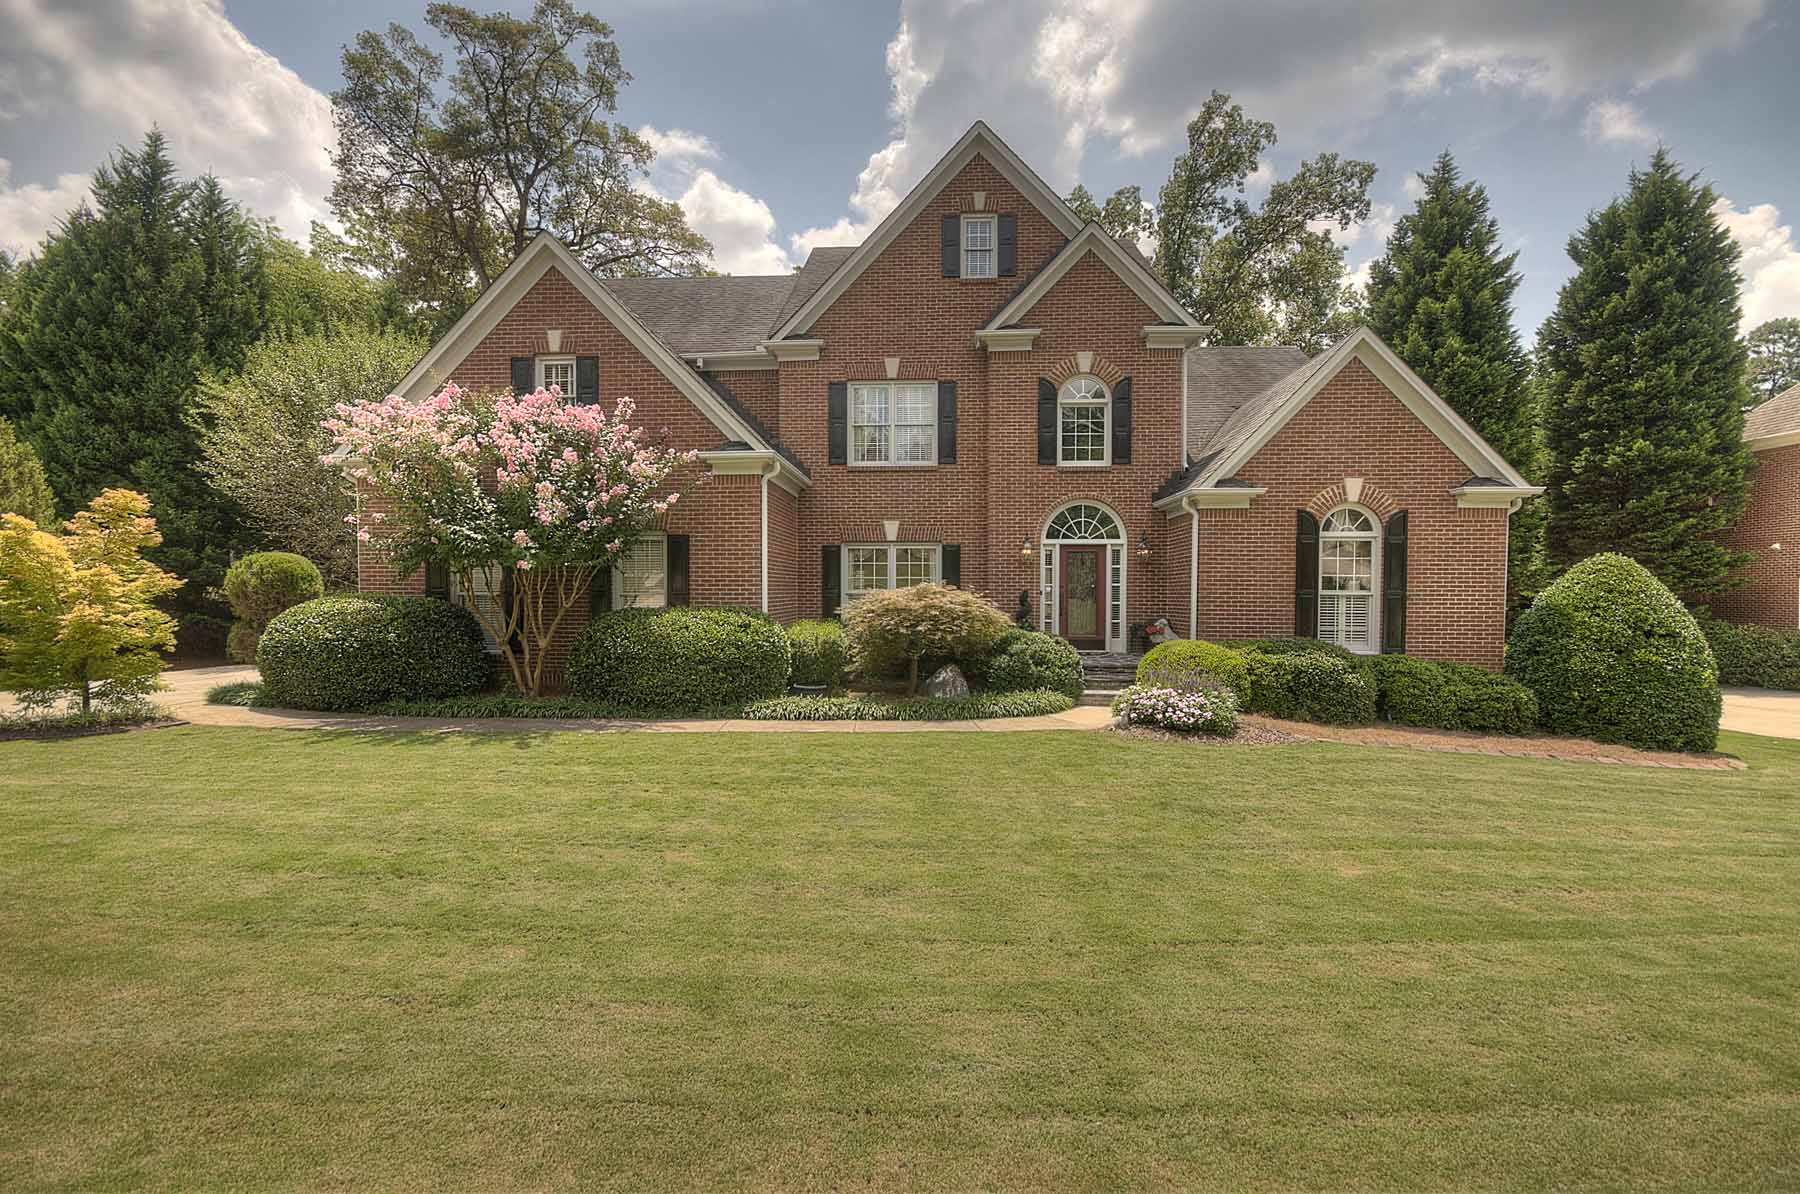 Property For Sale at Remodeled and Meticulously Maintained in Sought After Sandy Springs Area